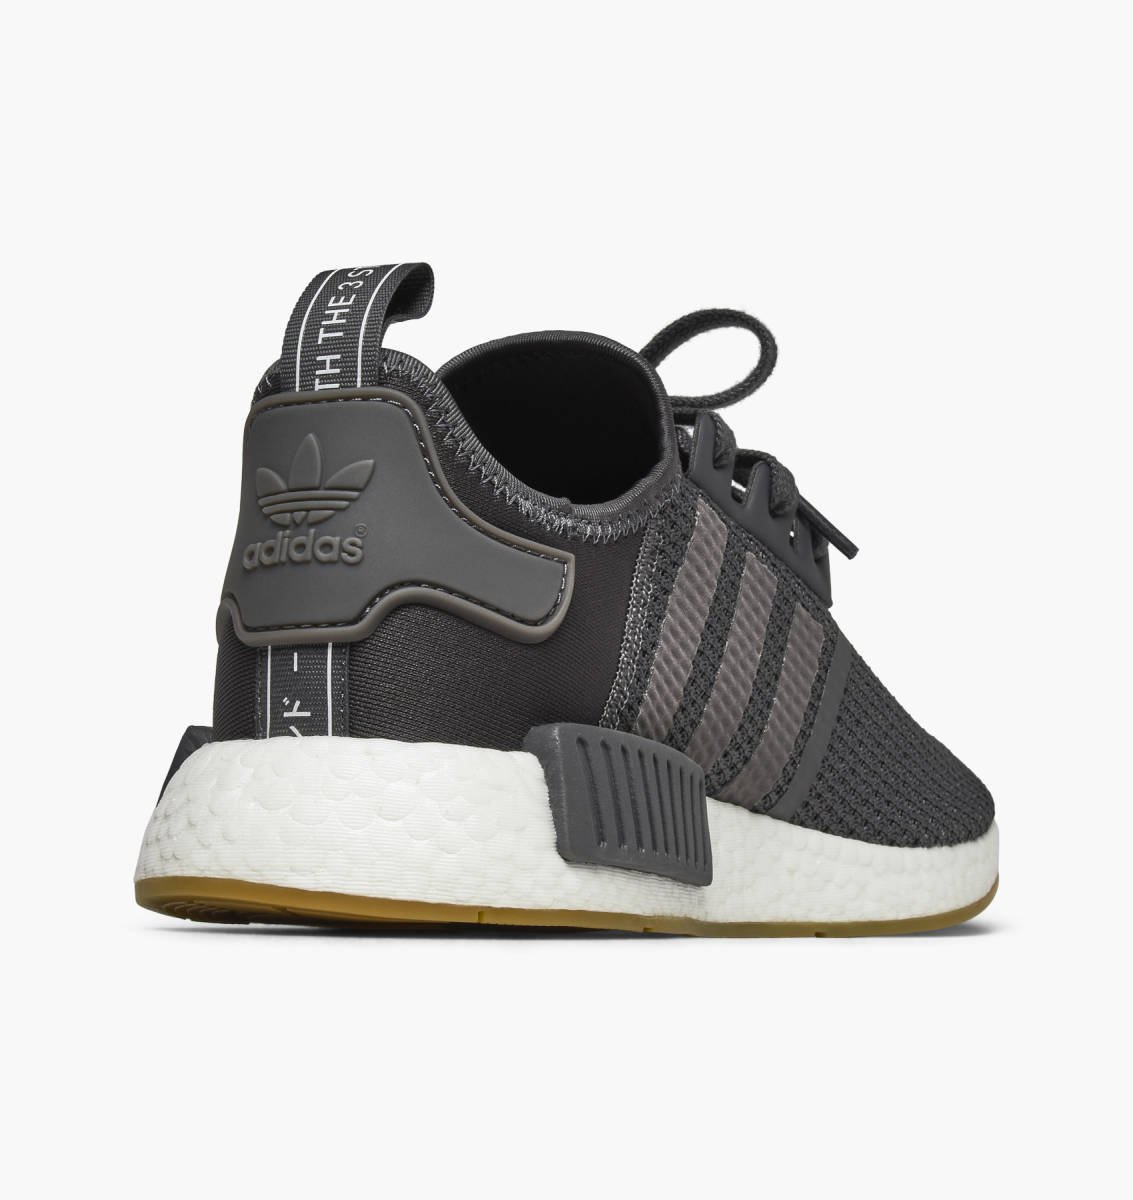 5740812bf126c adidas Originals NMD R1 in grau - B42199